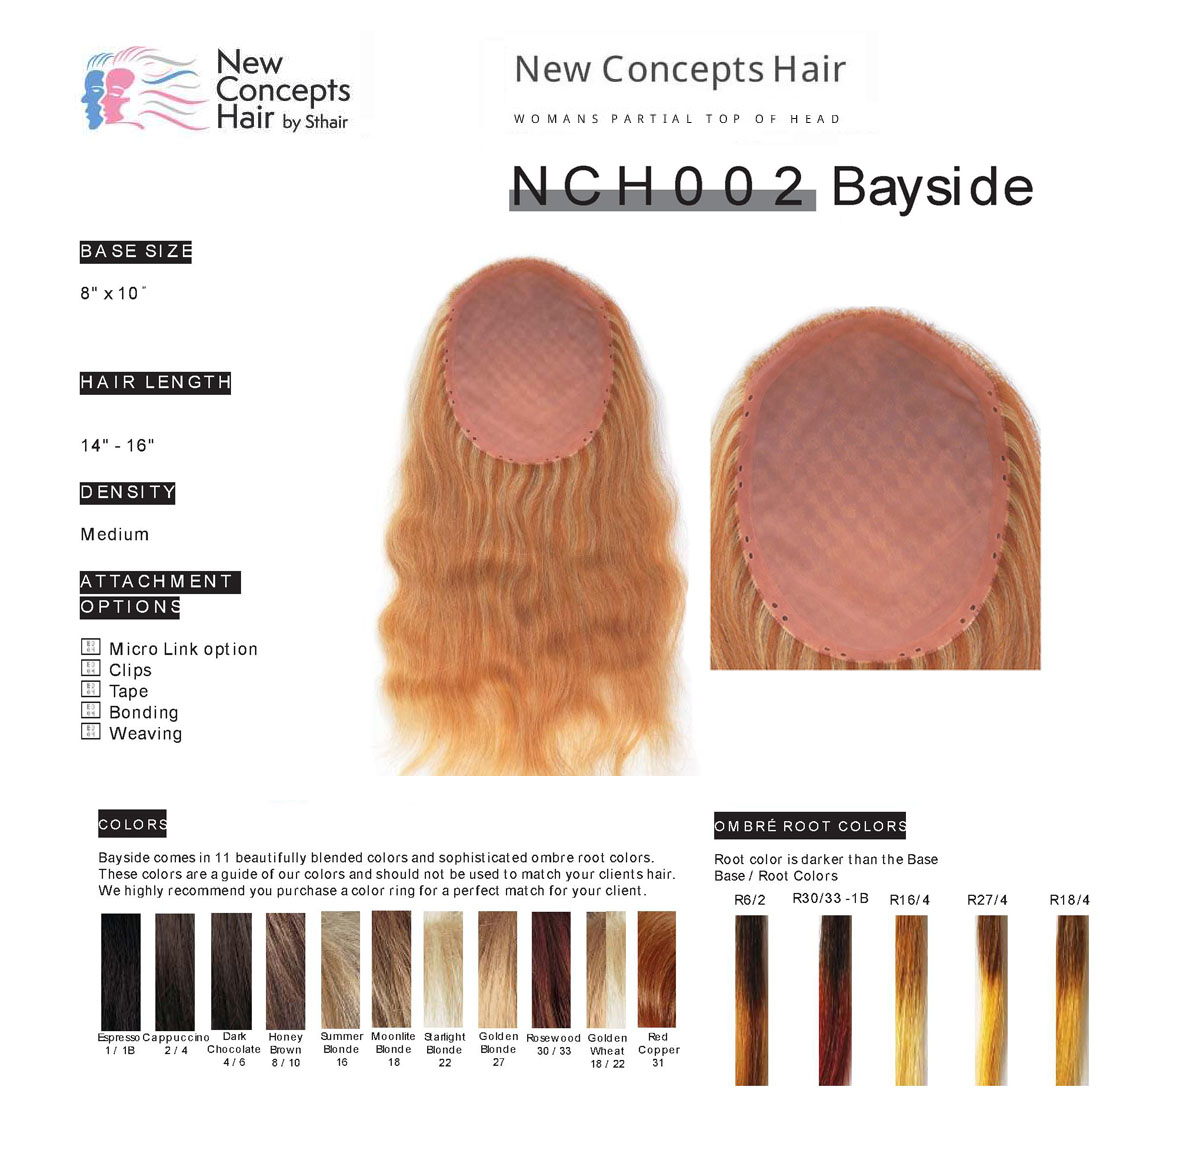 NEW CONCEPTS BAYSIDE NCH002